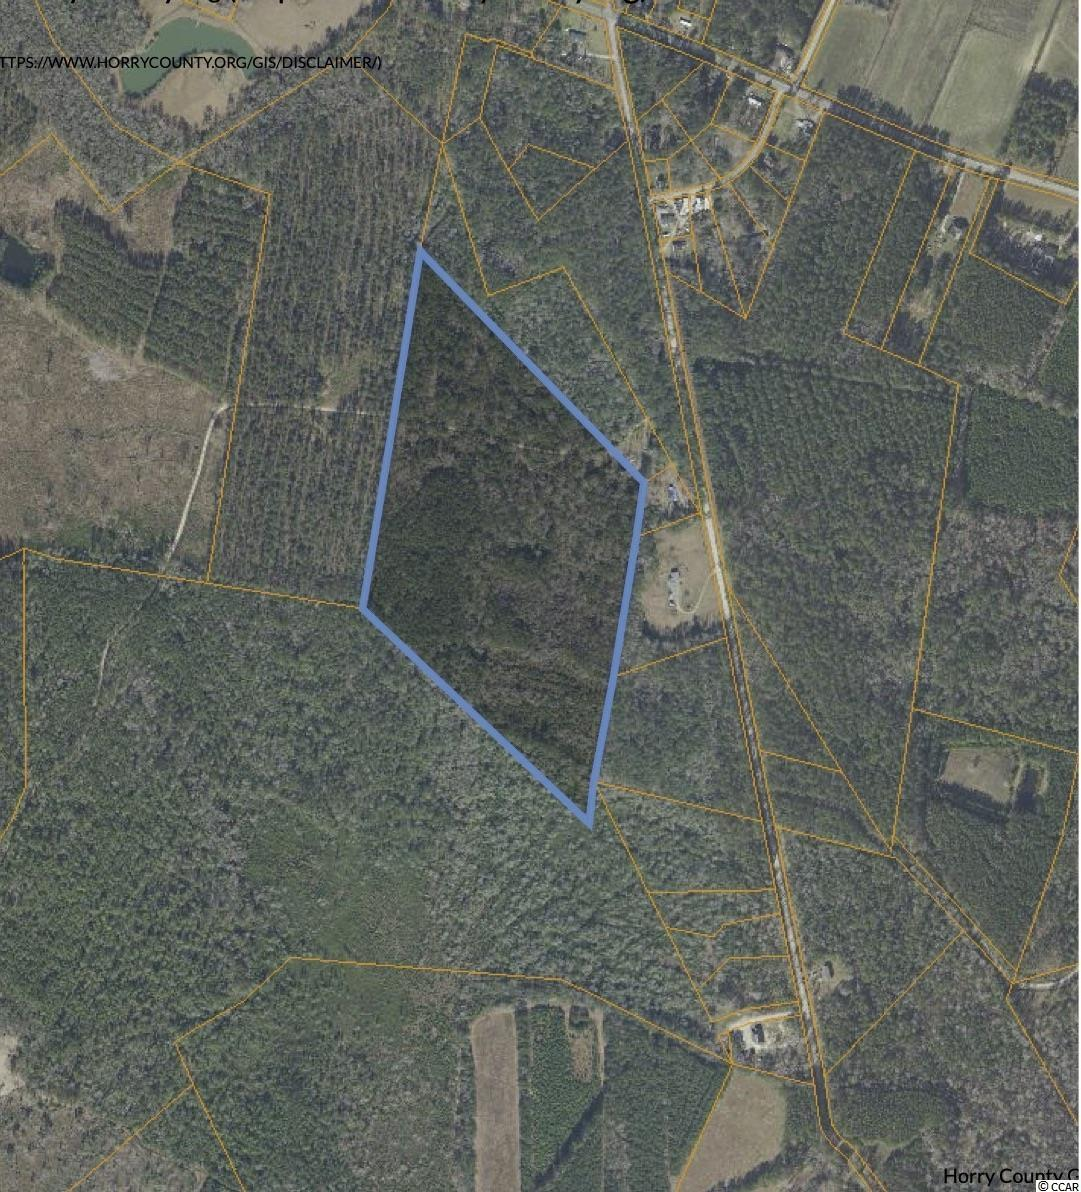 39.25 acres of natural paradise. Only 30 minutes from the beach, 15 minutes to Conway. No HOA just an amazing, private retreat. Zoned FA. All listing information is deemed reliable, but it is the buyers' responsibility to verify.